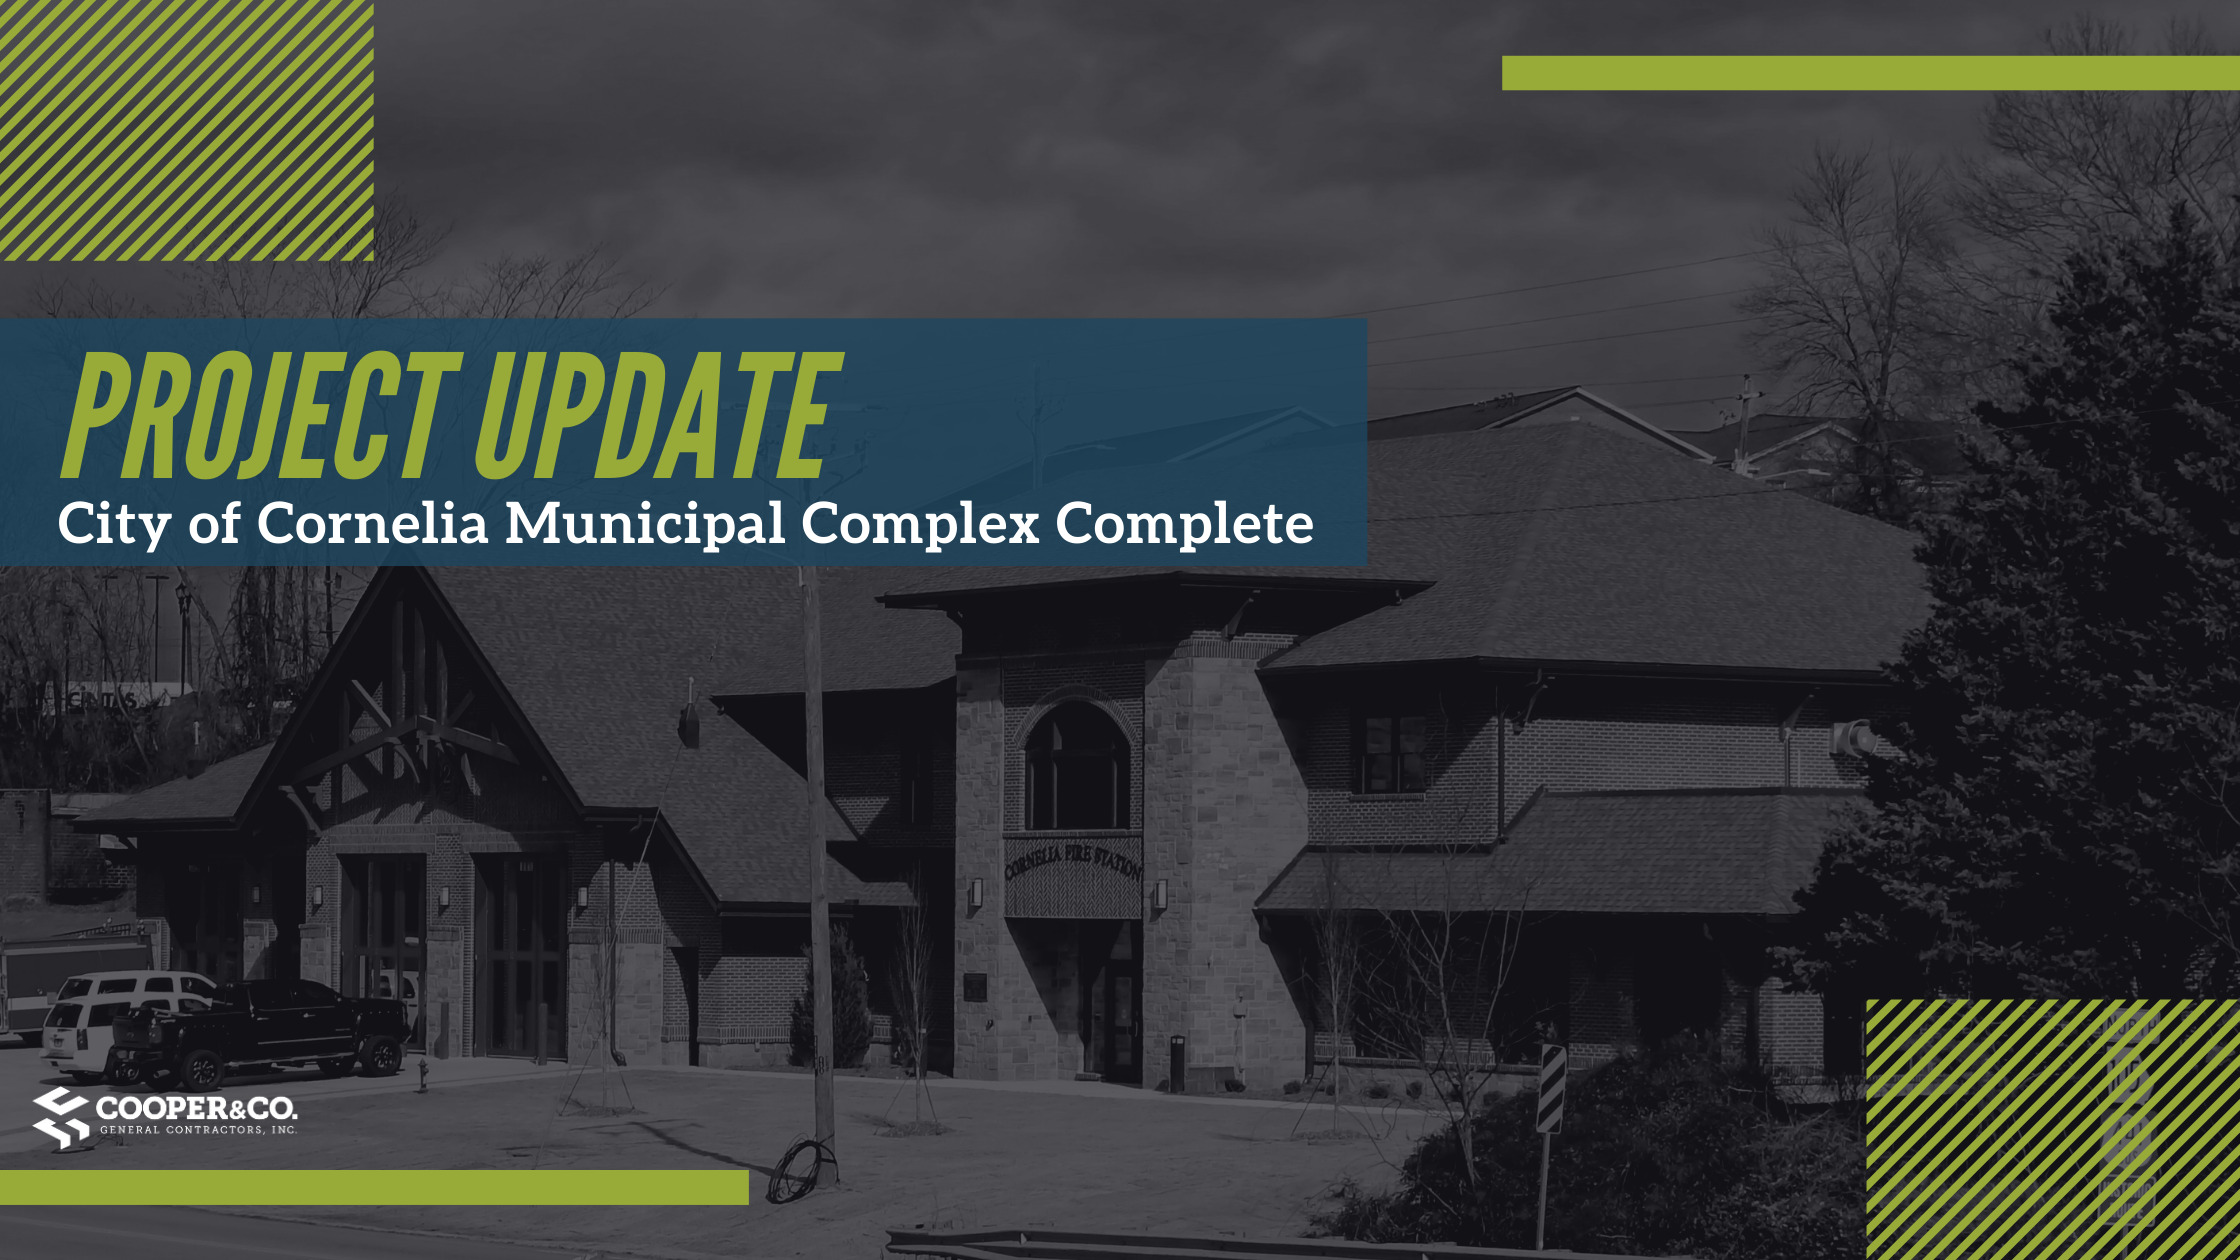 Project Update: City of Cornelia Municipal Complex Complete